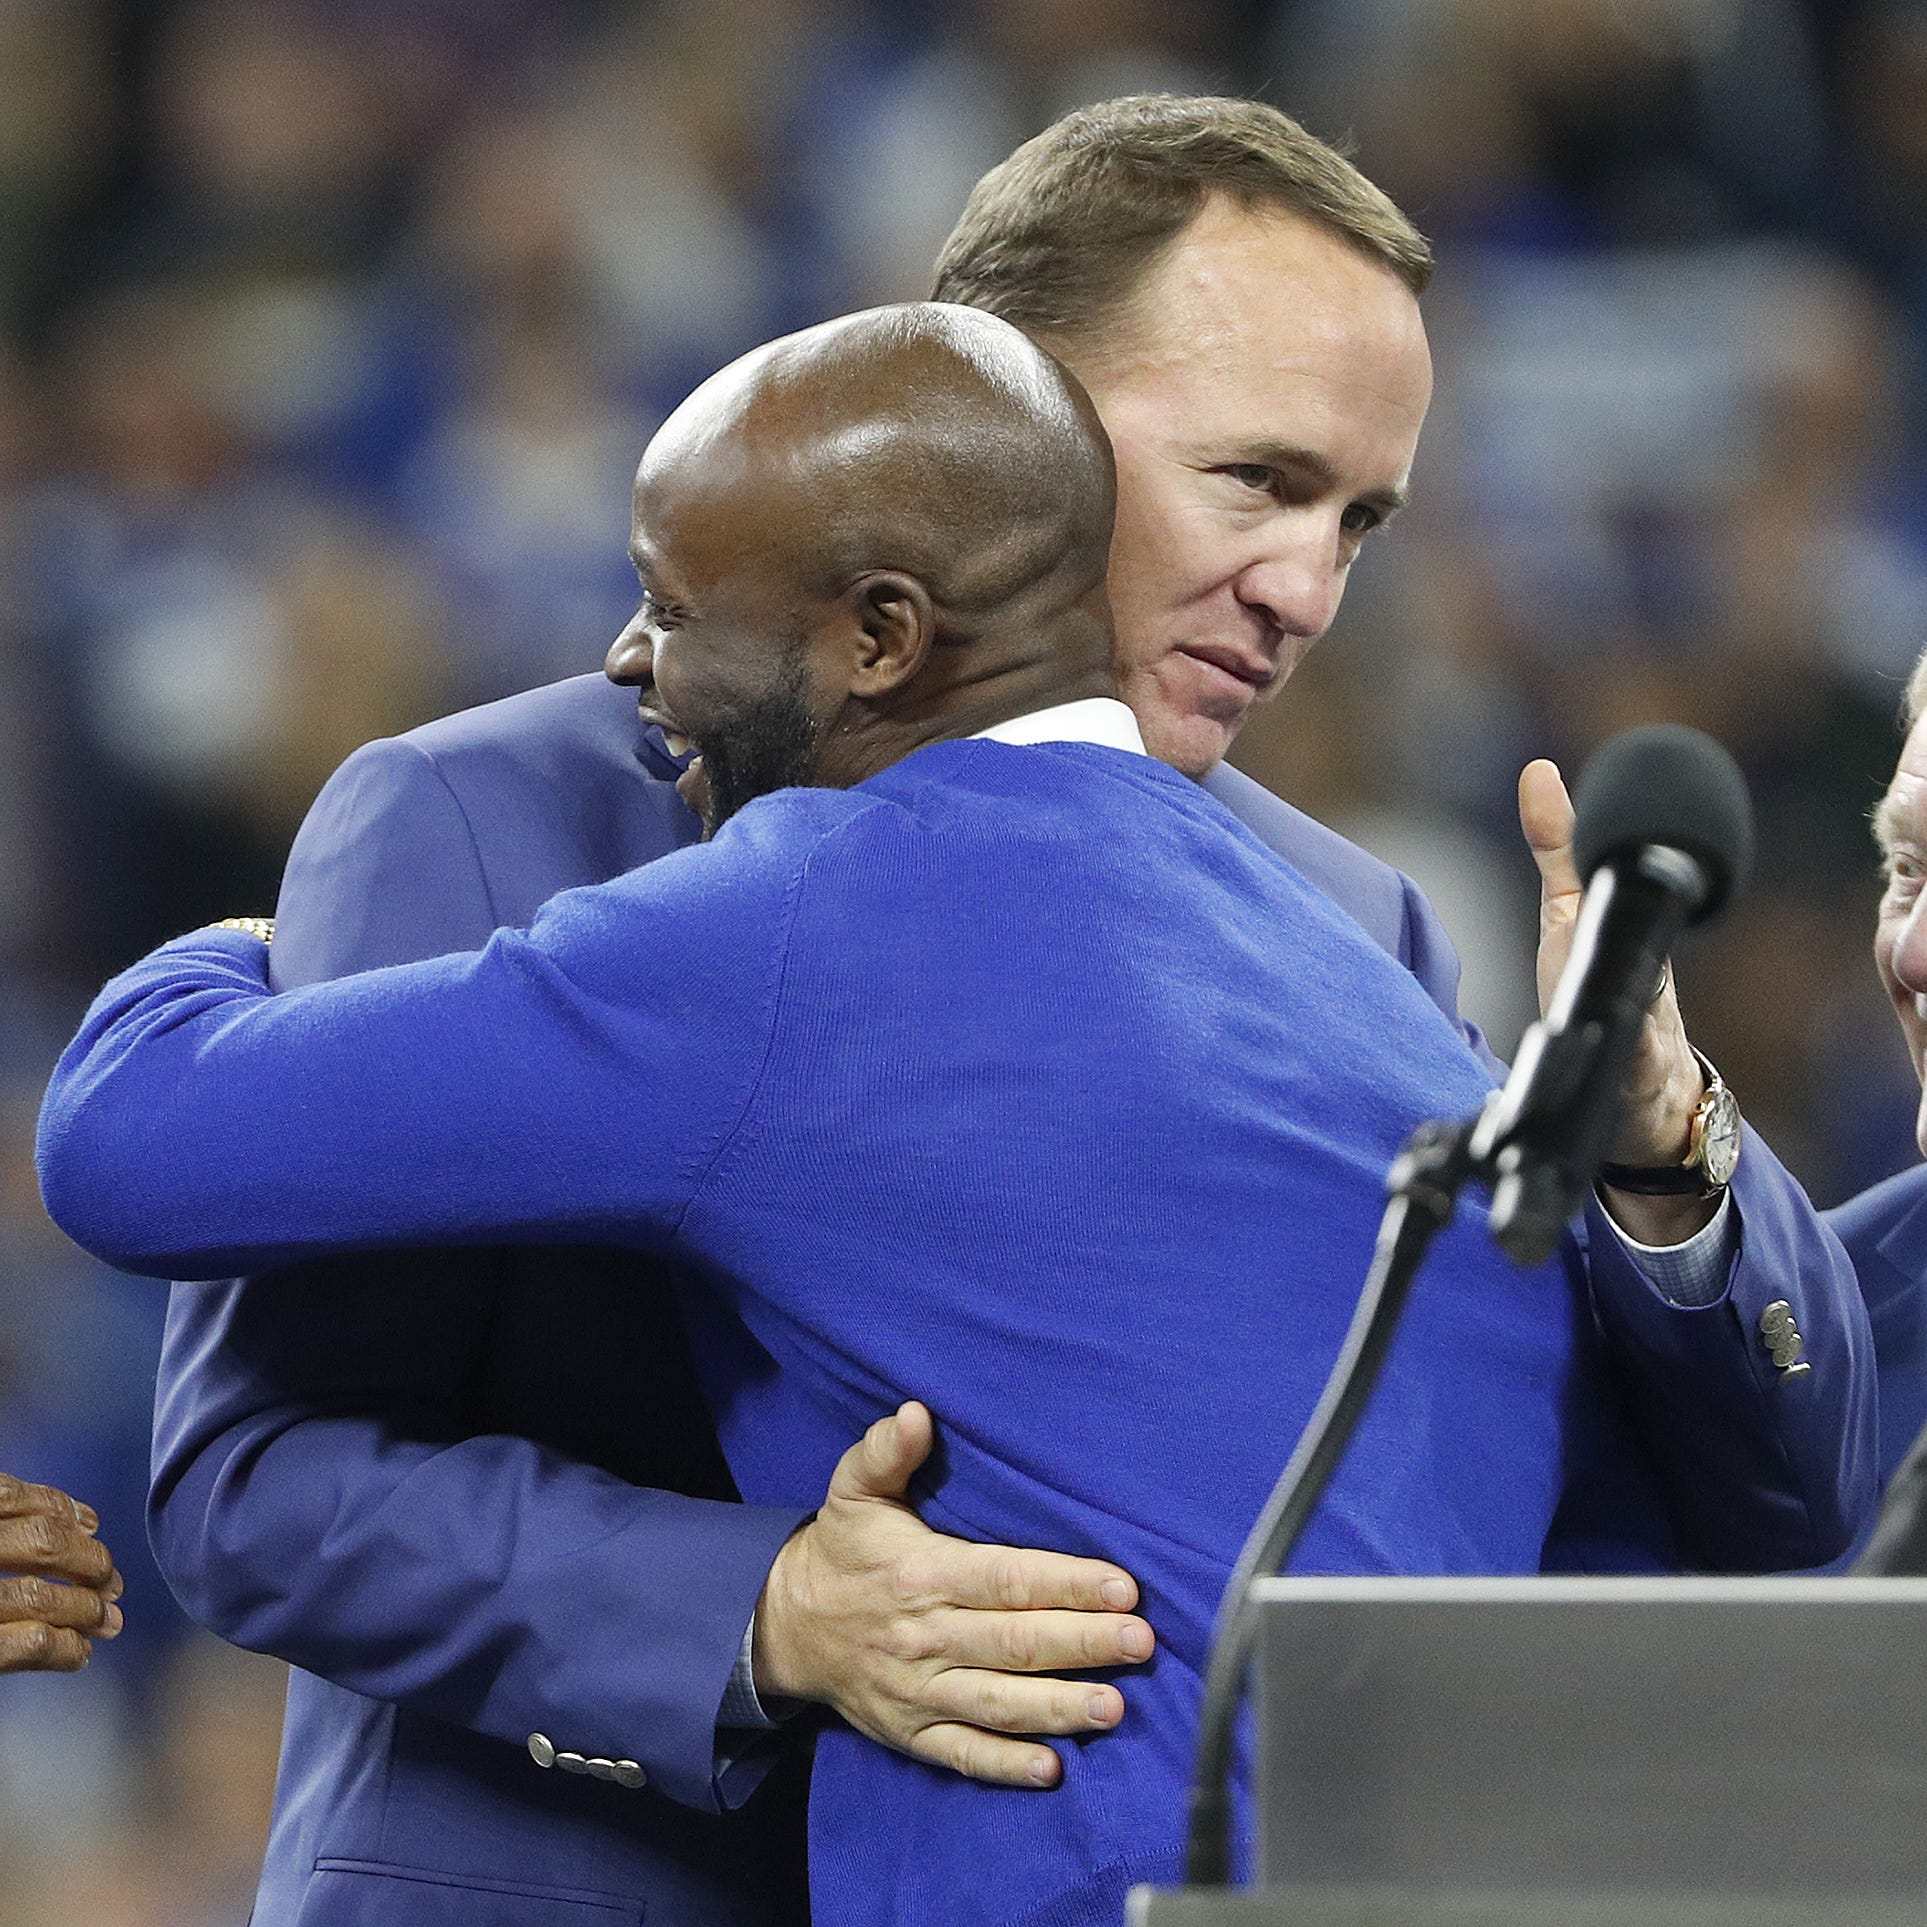 Reggie Wayne: Peyton Manning could be a 'Jerry Jones' type NFL owner